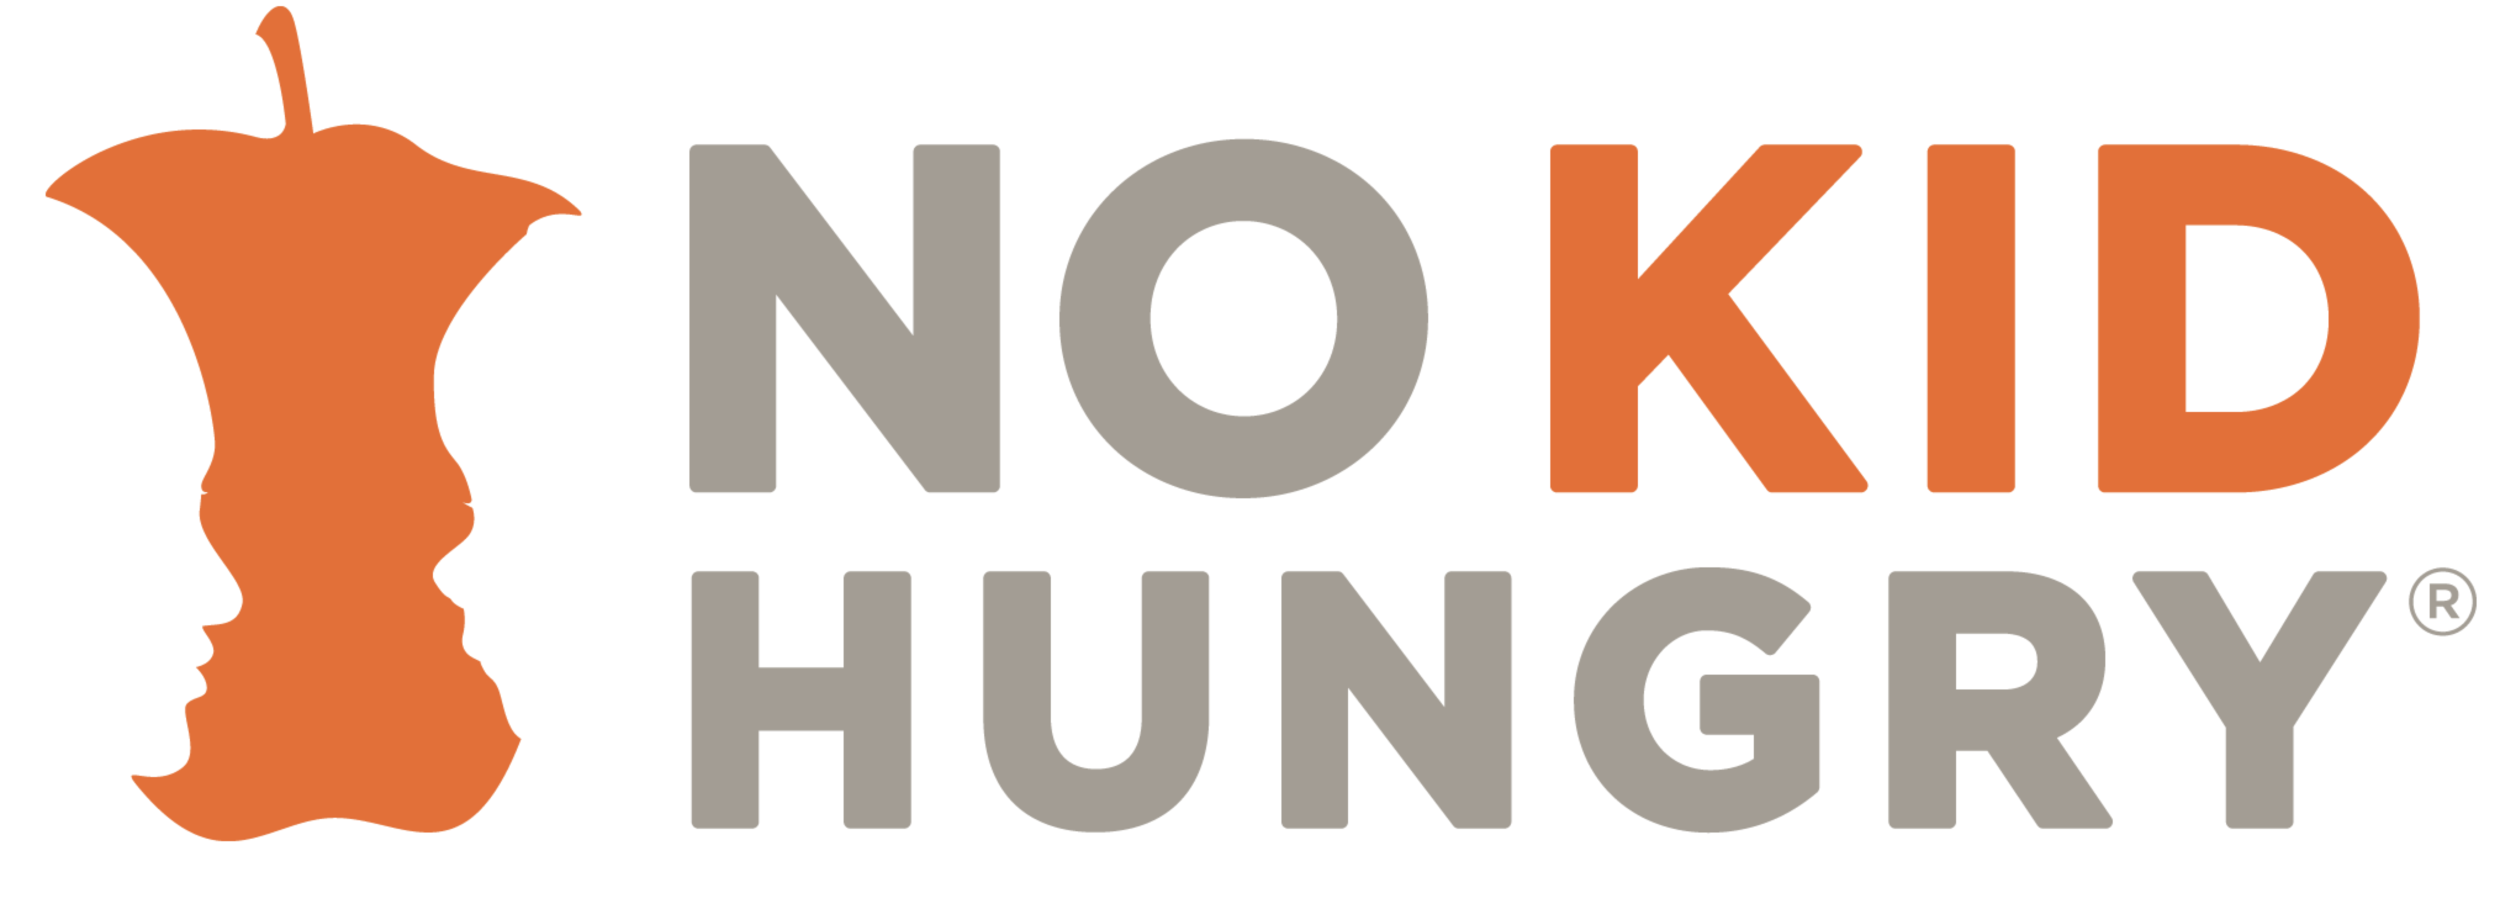 Giving Back - Half Eaten Cookie Hospitality is also committed to giving back to the community and proudly supports No Kid Hungry in the organization's efforts to end child hunger in America.